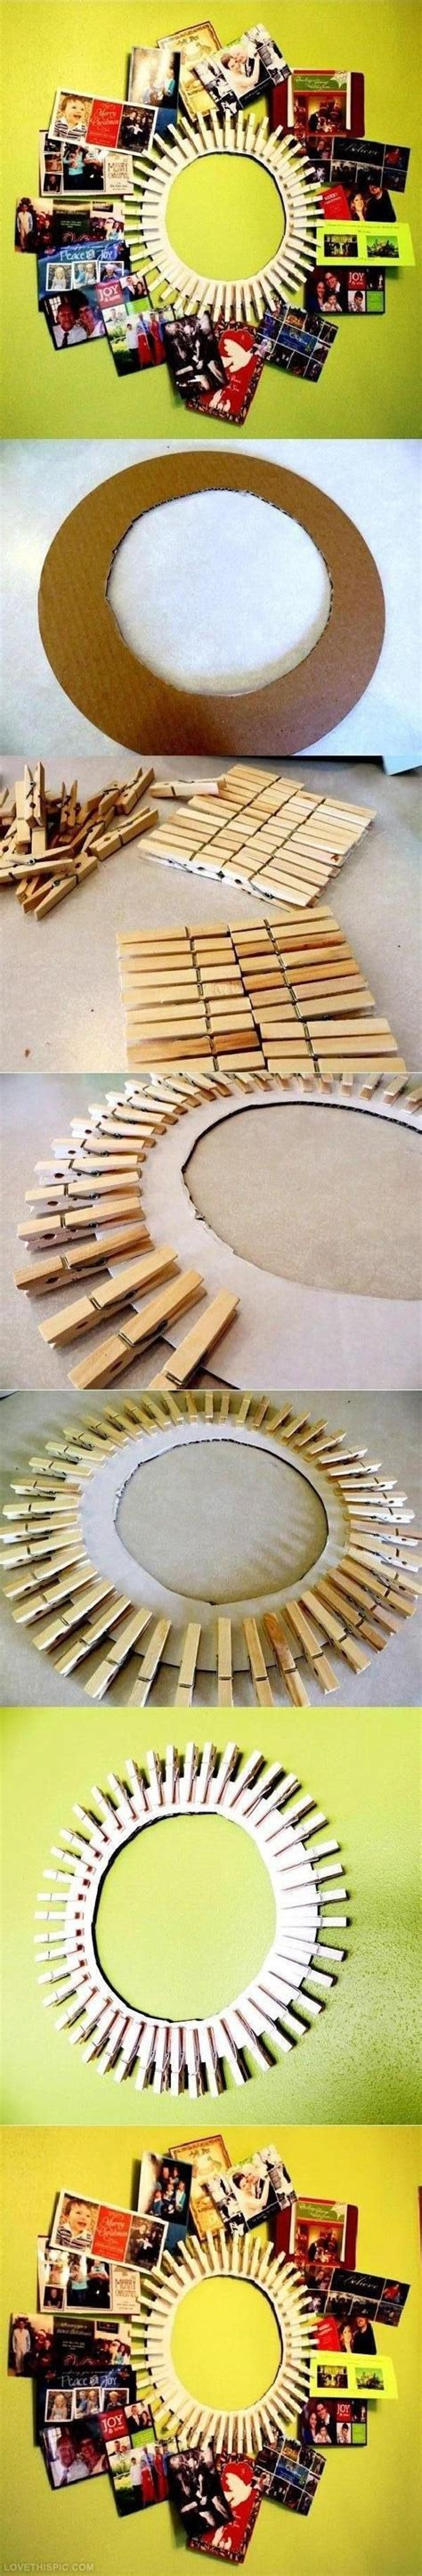 diy projects with picture frames 31 cool and crafty diy picture frames diy projects for